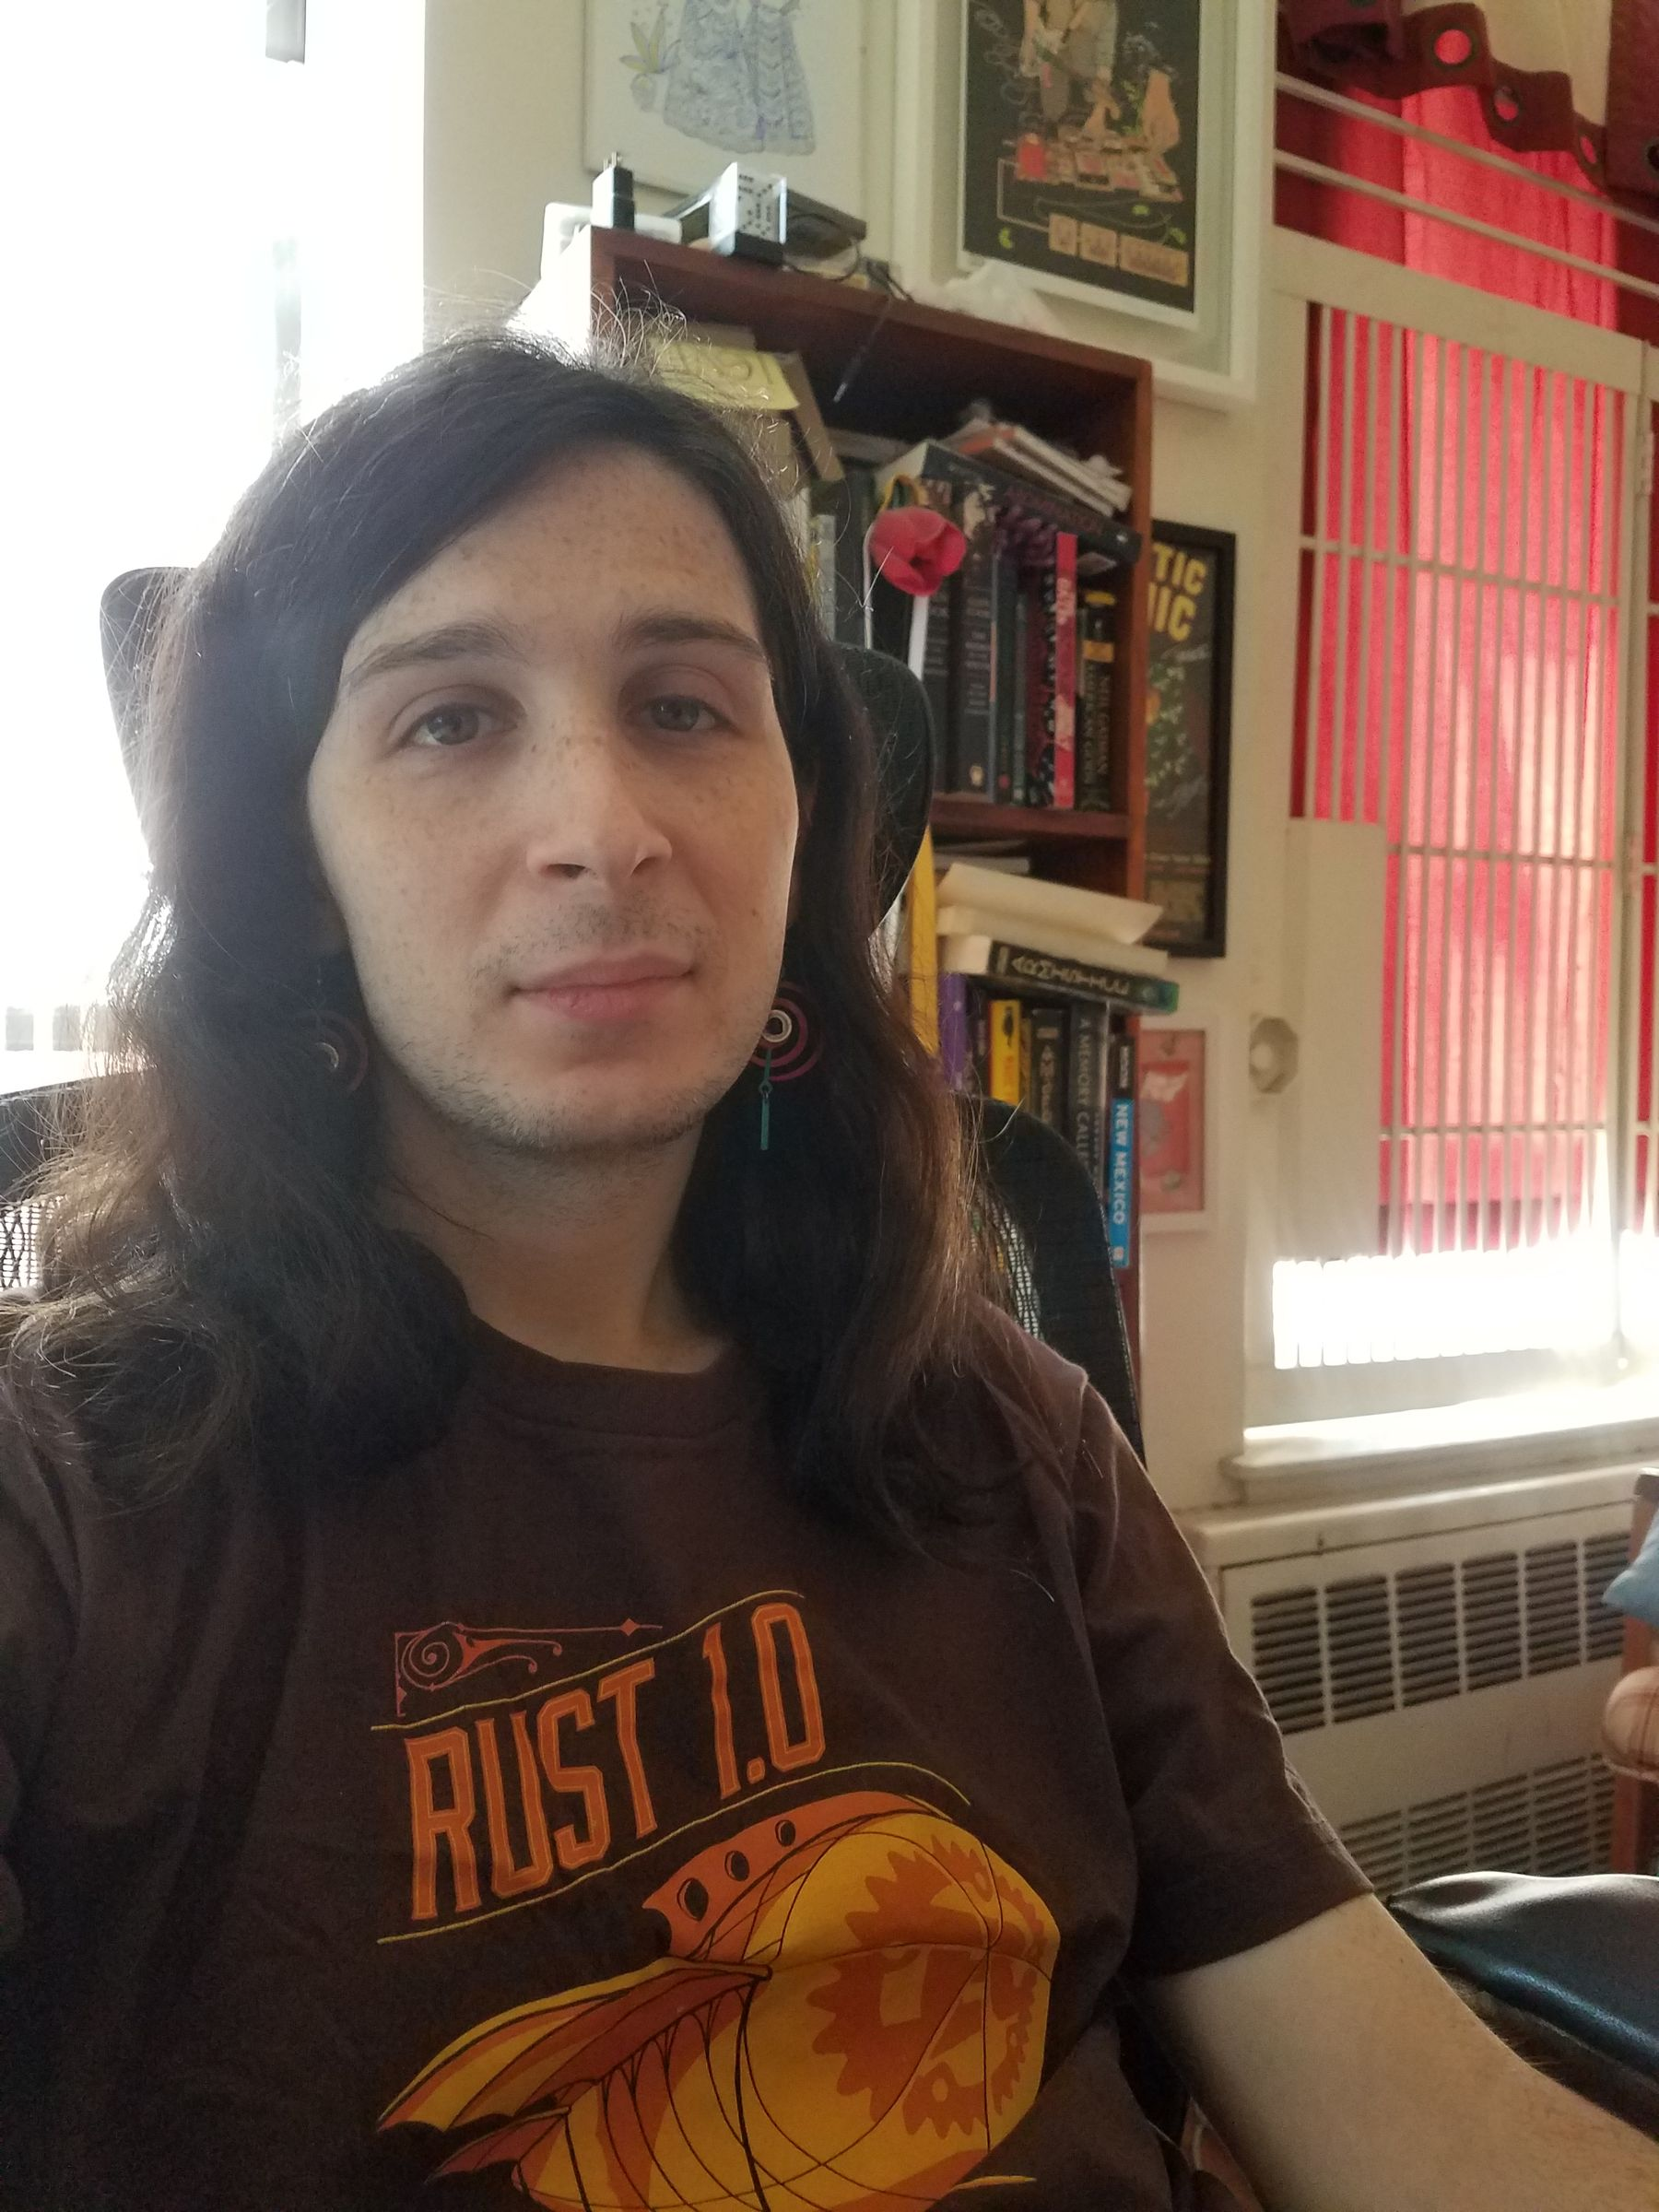 "Selfie of me, sitting indoors at a desk chair, wearing a brown ""Rust 1.0"" t-shirt. Behind me is a bookcase and two windows, one of which is filtering light through red drapes."